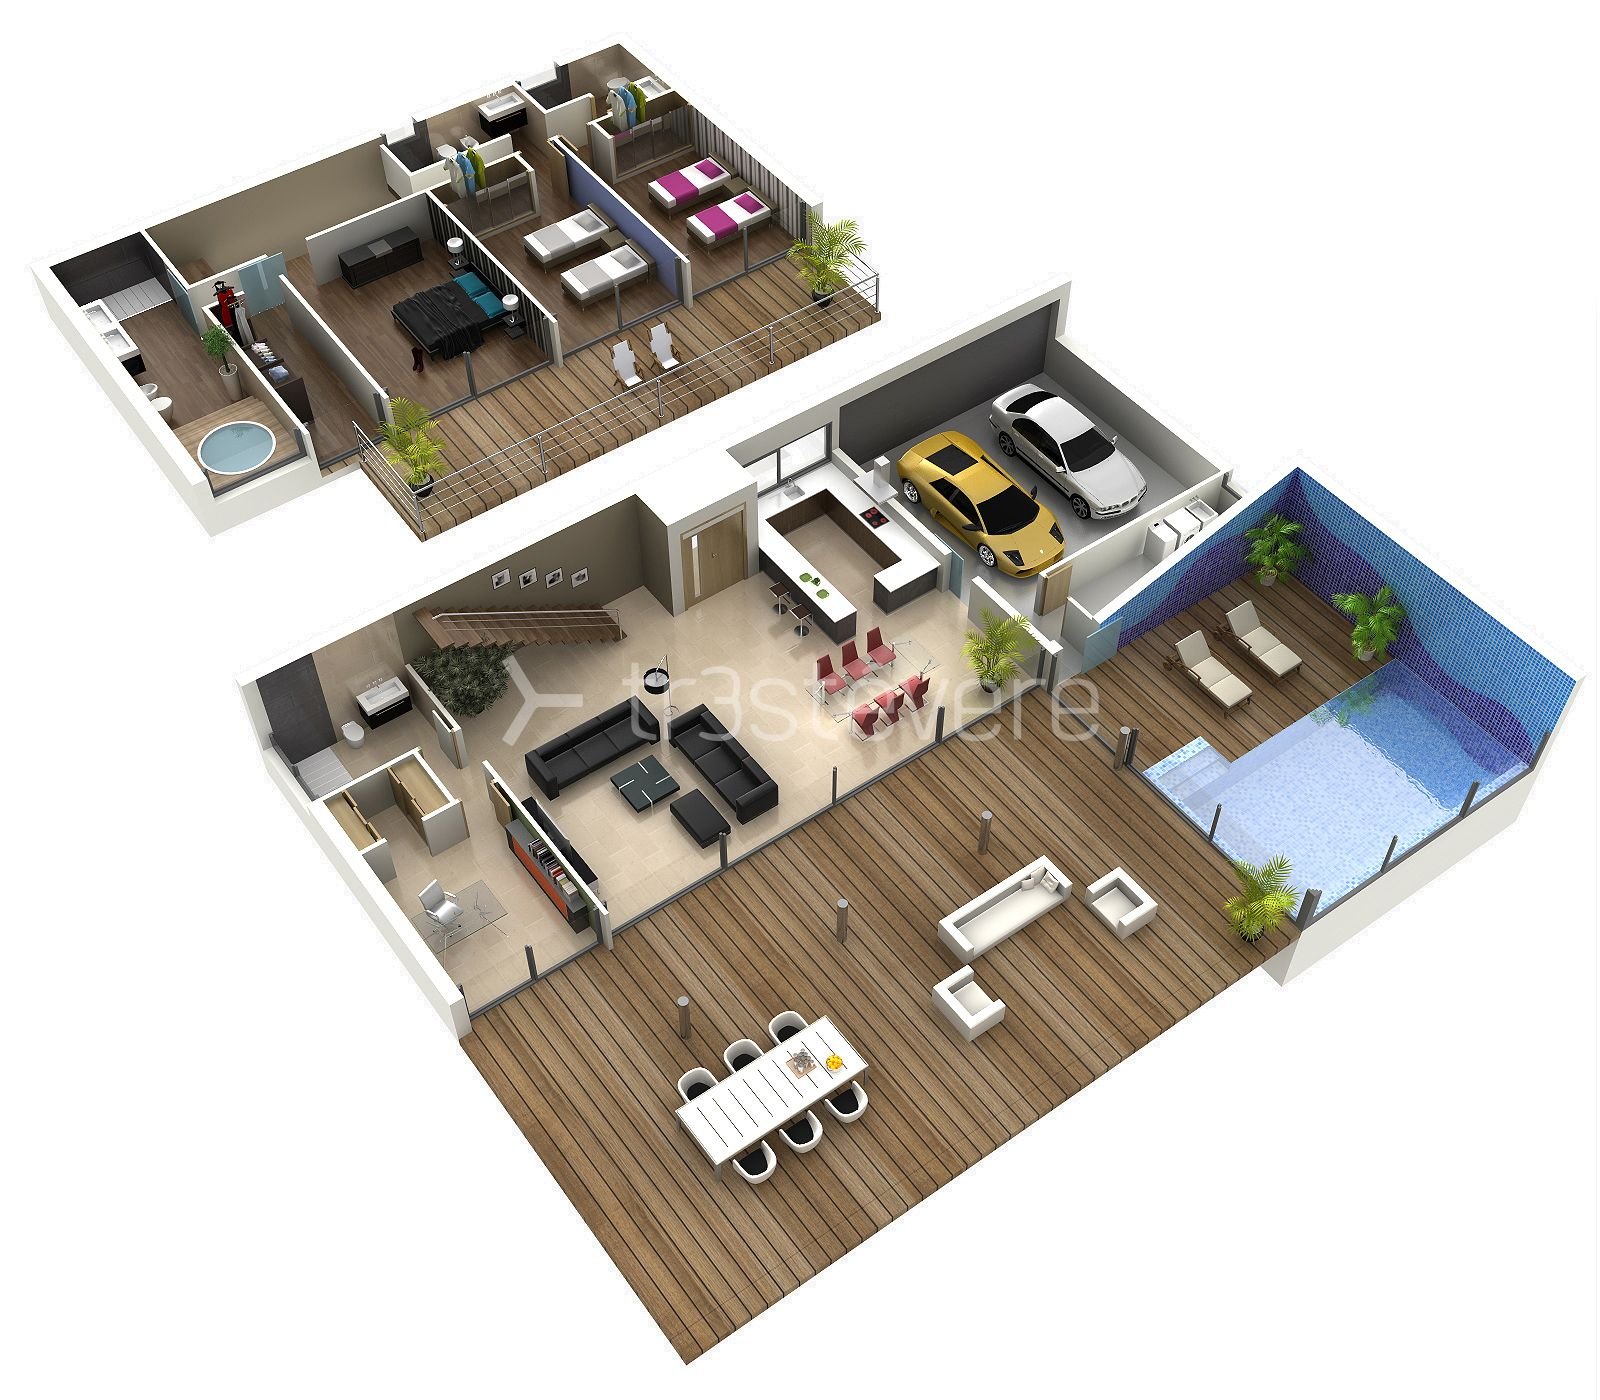 Plano 3d 02 02 floorplan pinterest 3d house and condos for Planos 3d